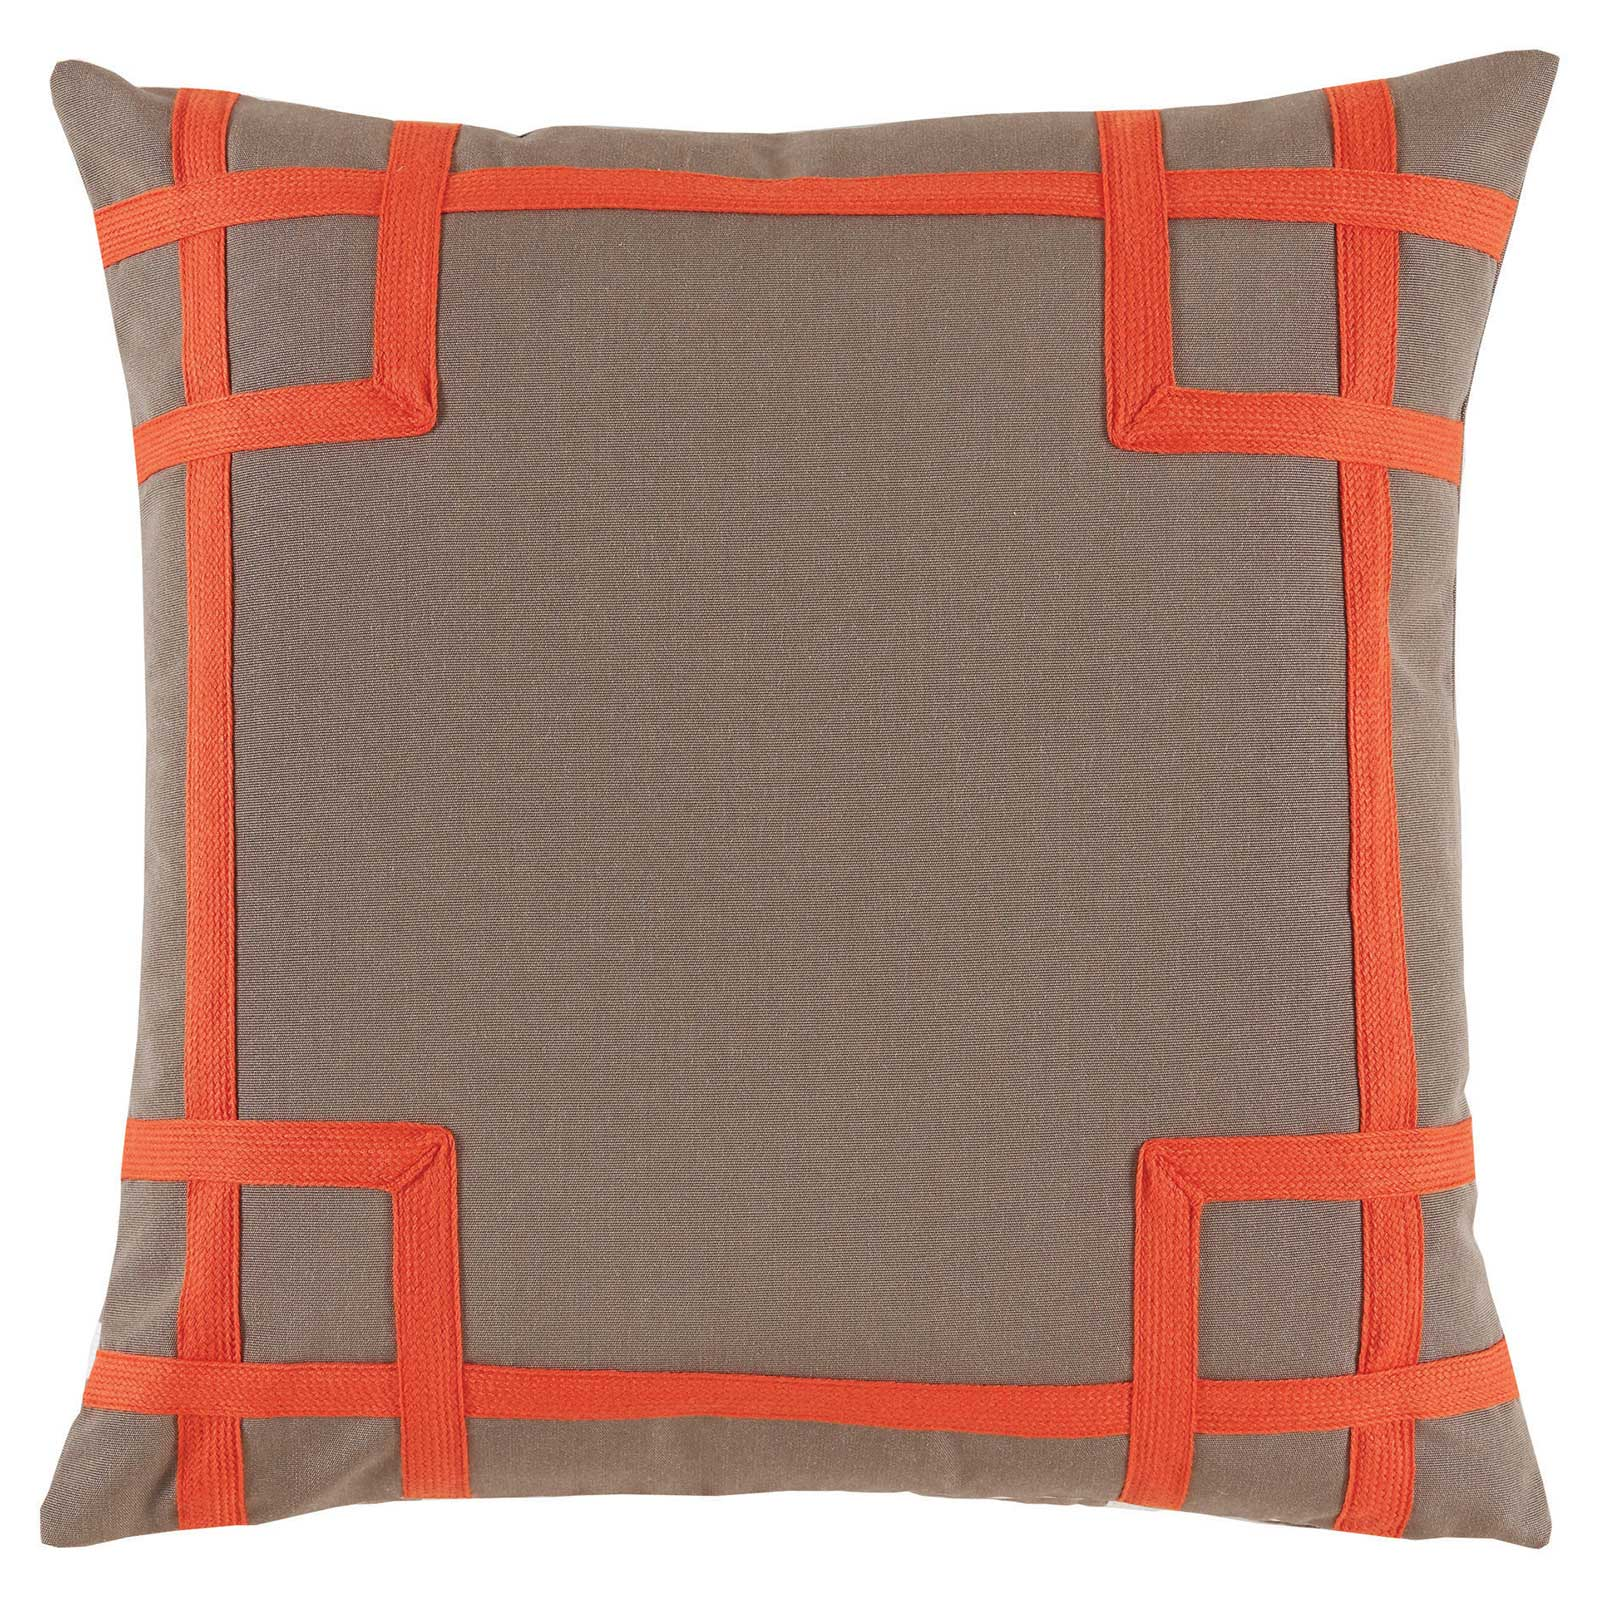 Paton Classic Outdoor Orange Trellis Trim Pillow - 20x20